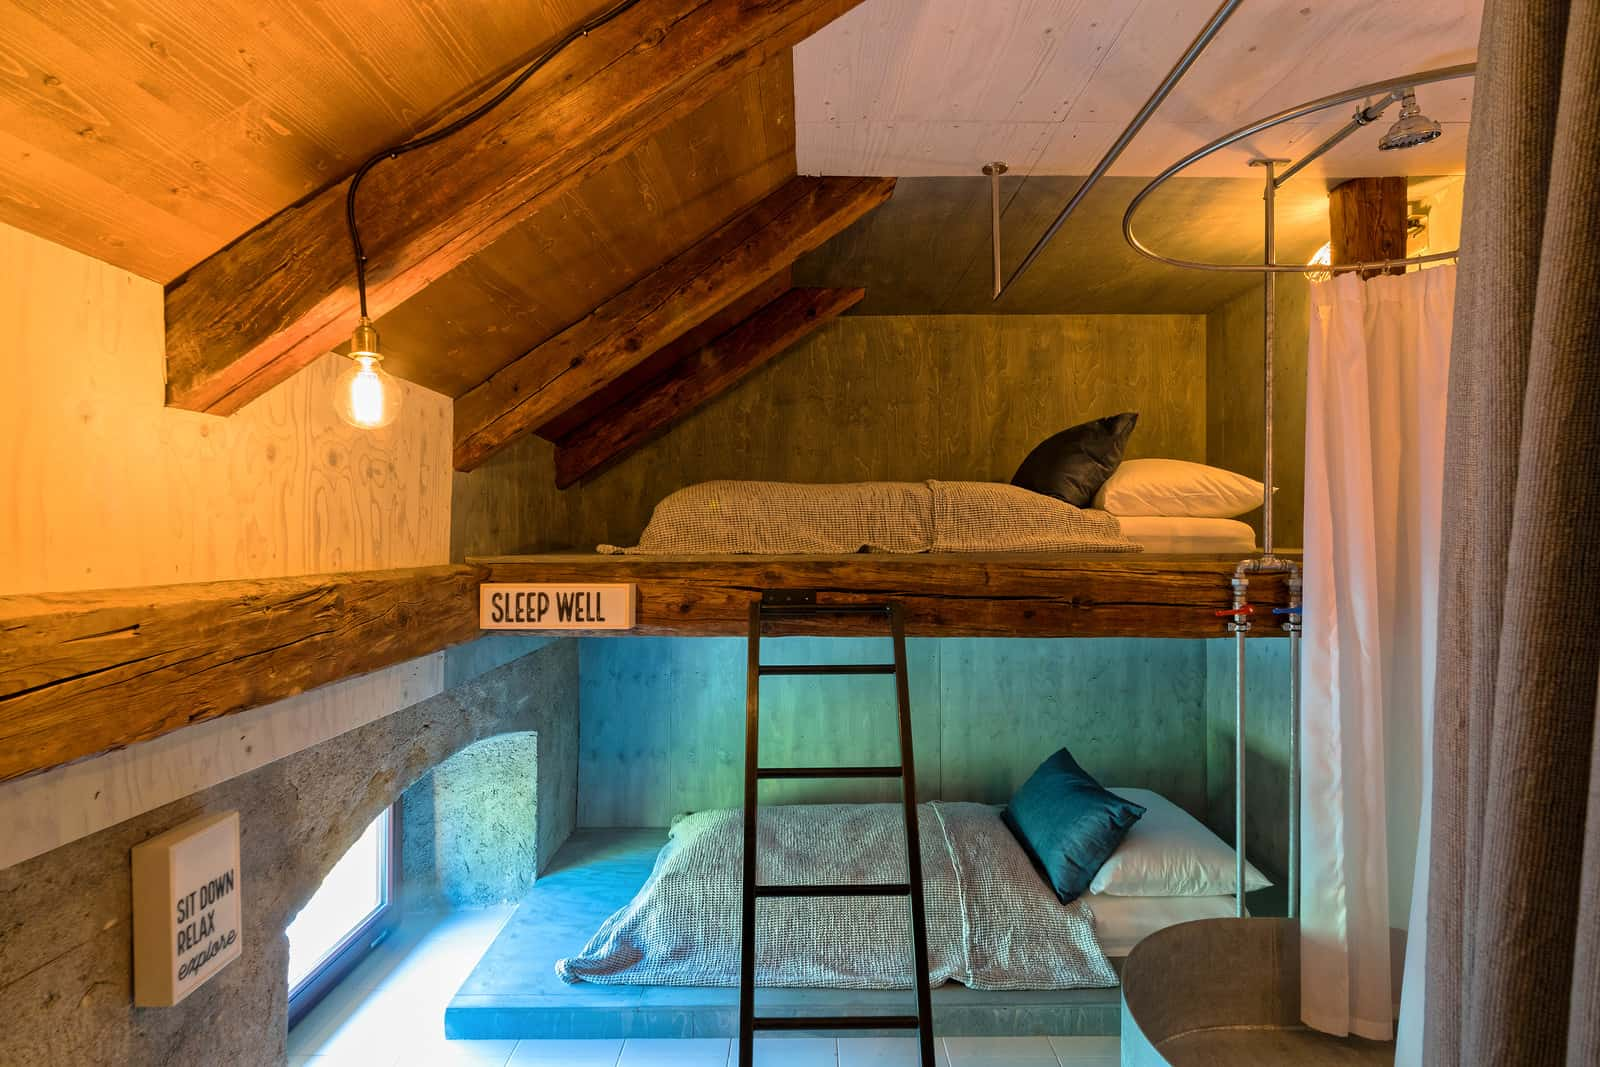 Rustic and Cozy Hotel Located in the City of Bresanona in Italy